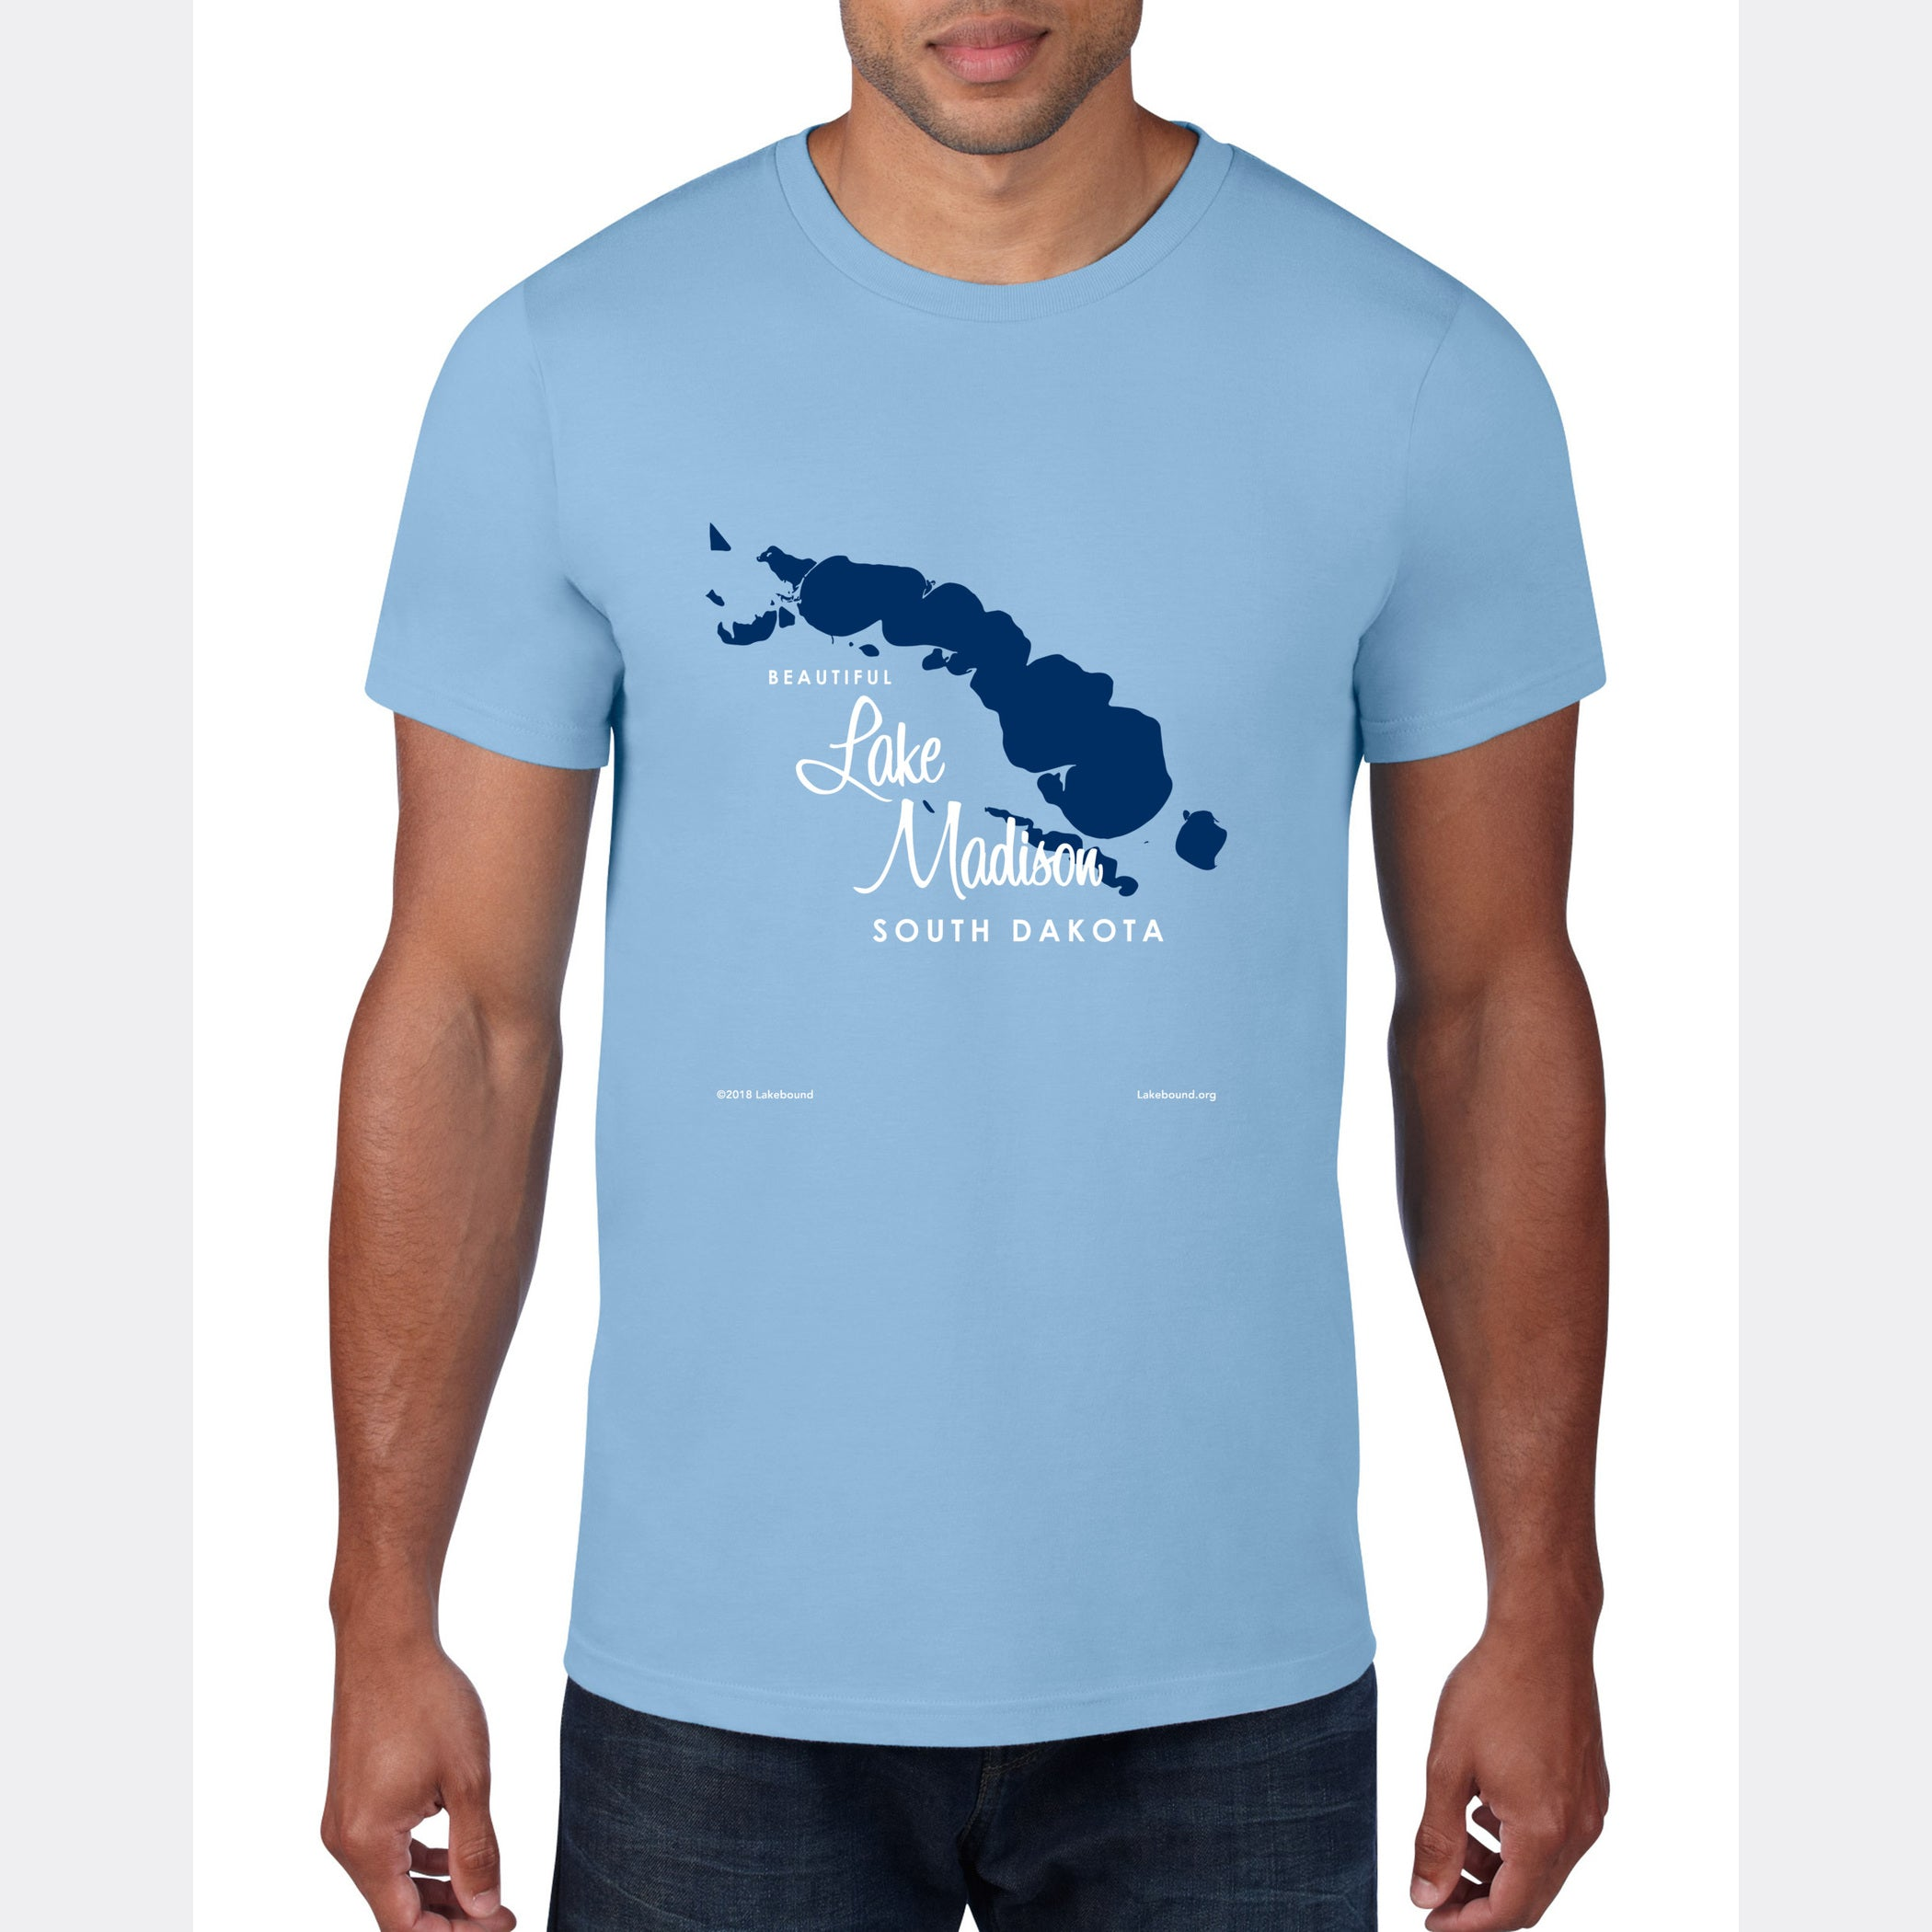 Lake Madison South Dakota, T-Shirt